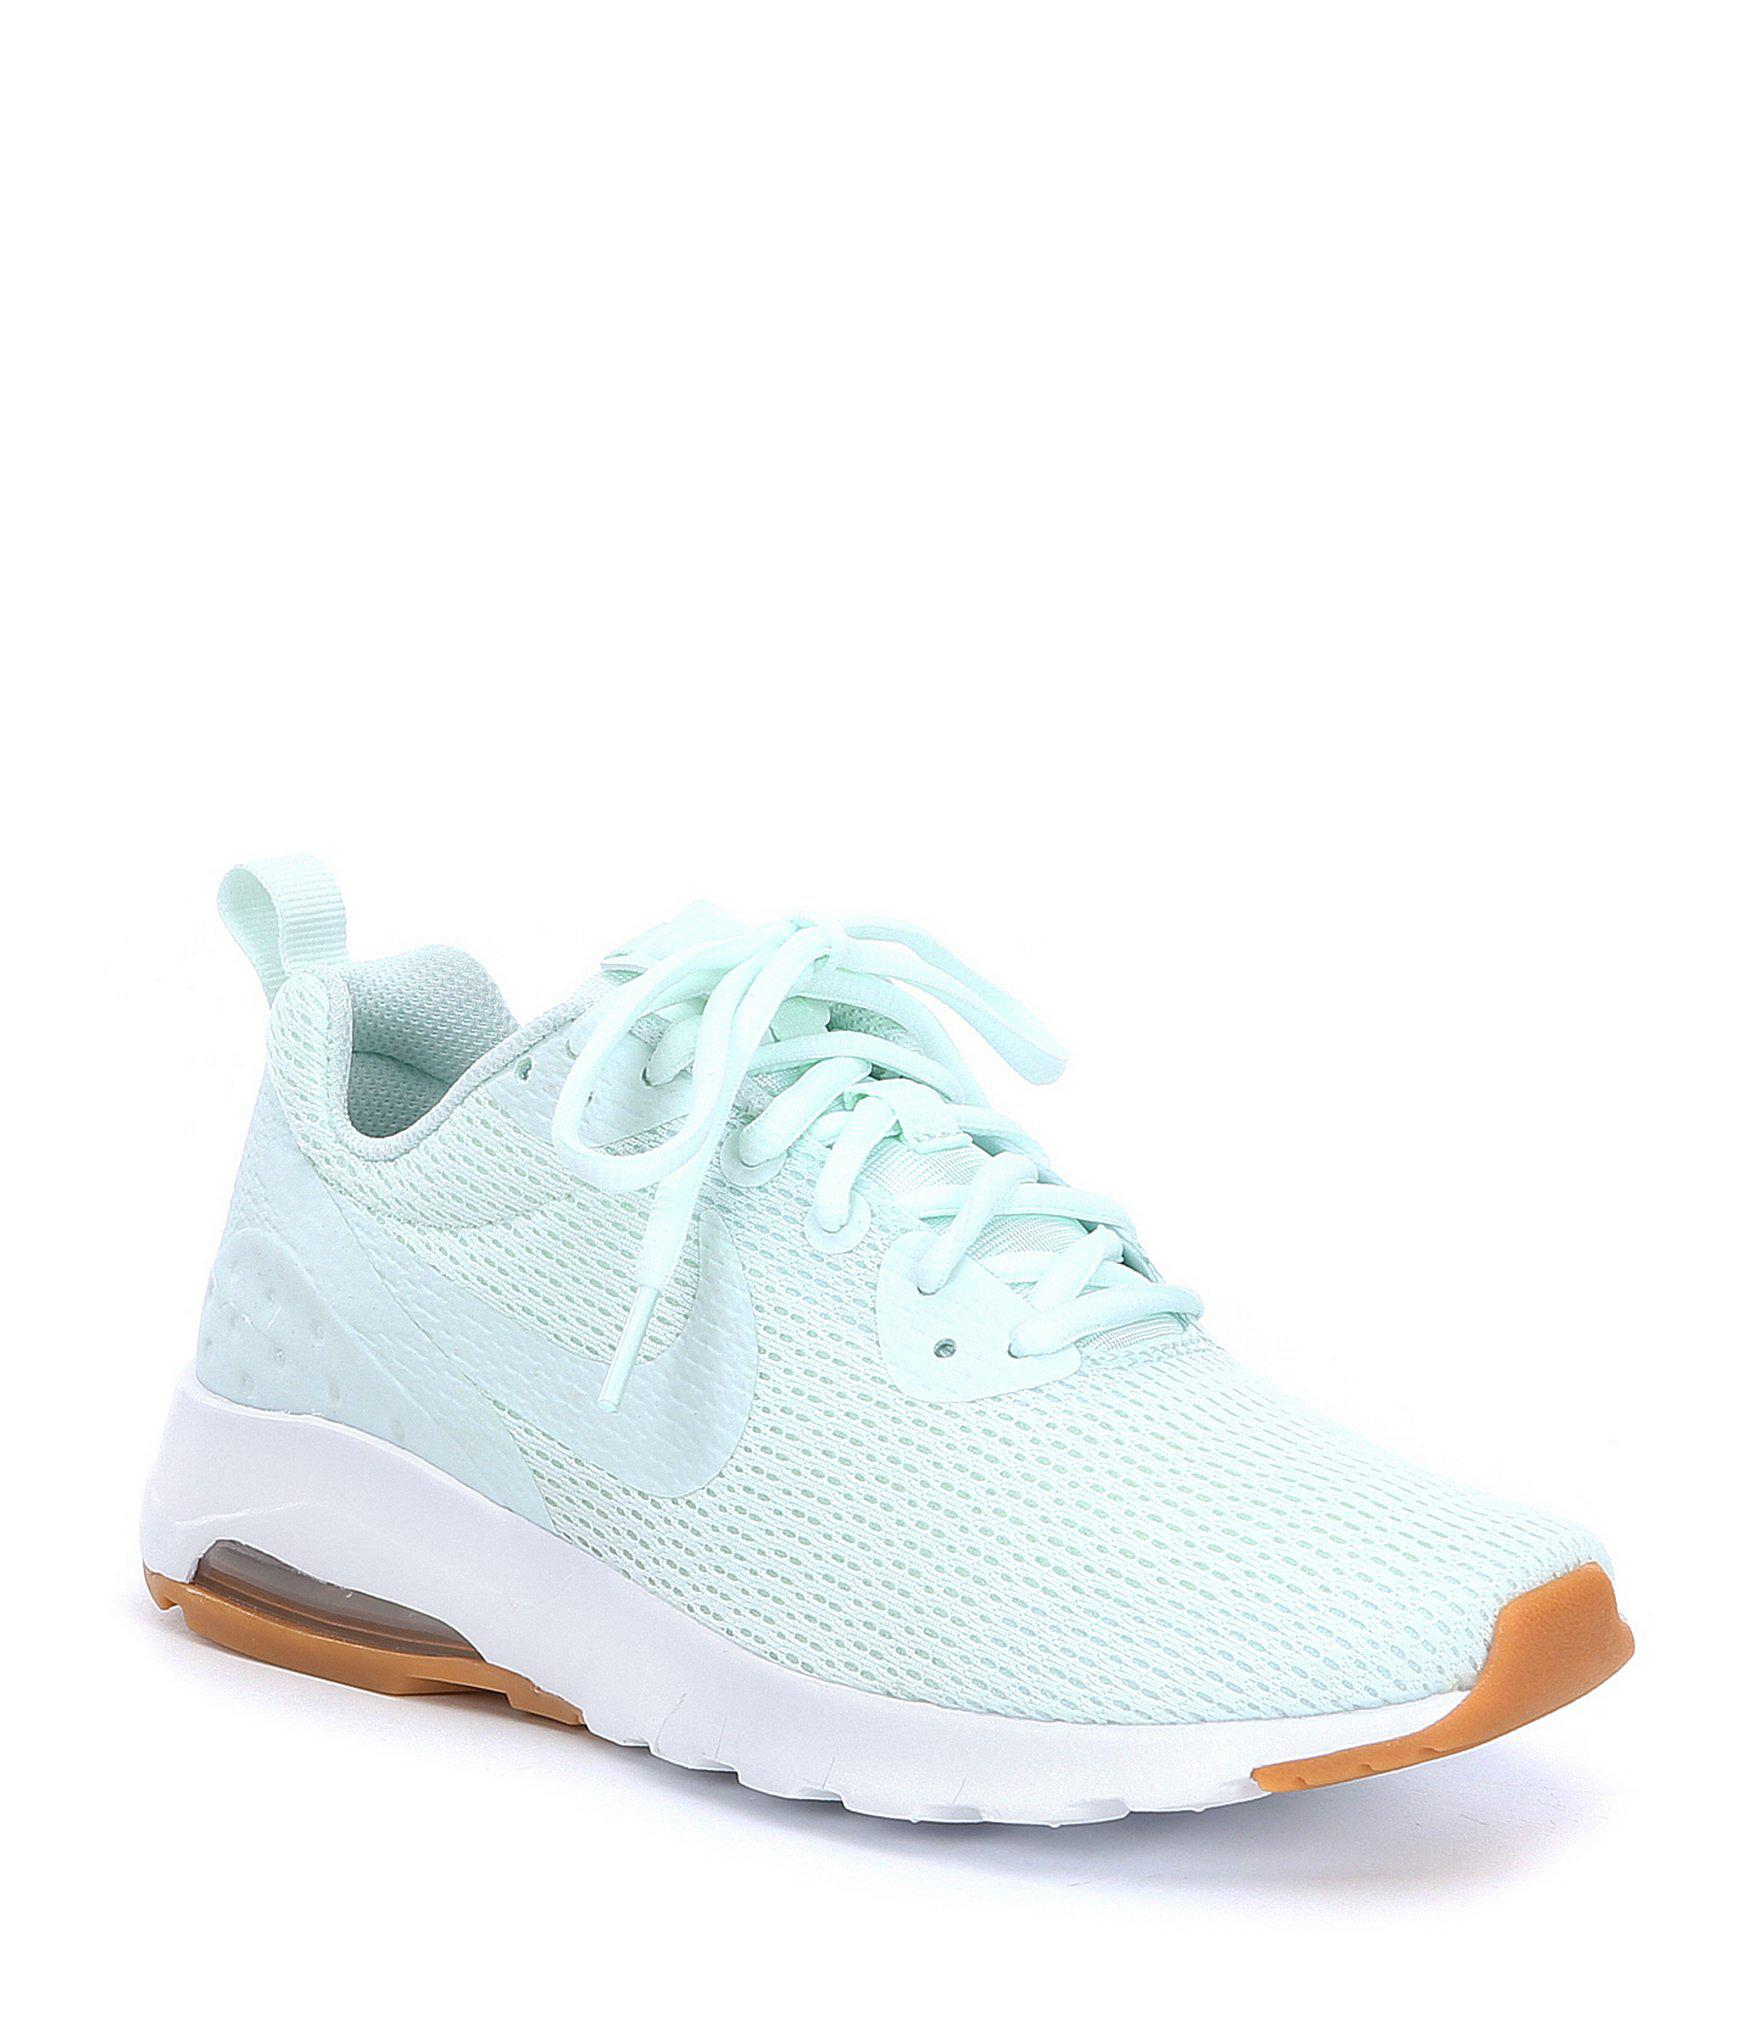 Nike Sportswear Air Max Dia Sneakers Damer Syren Sko Low